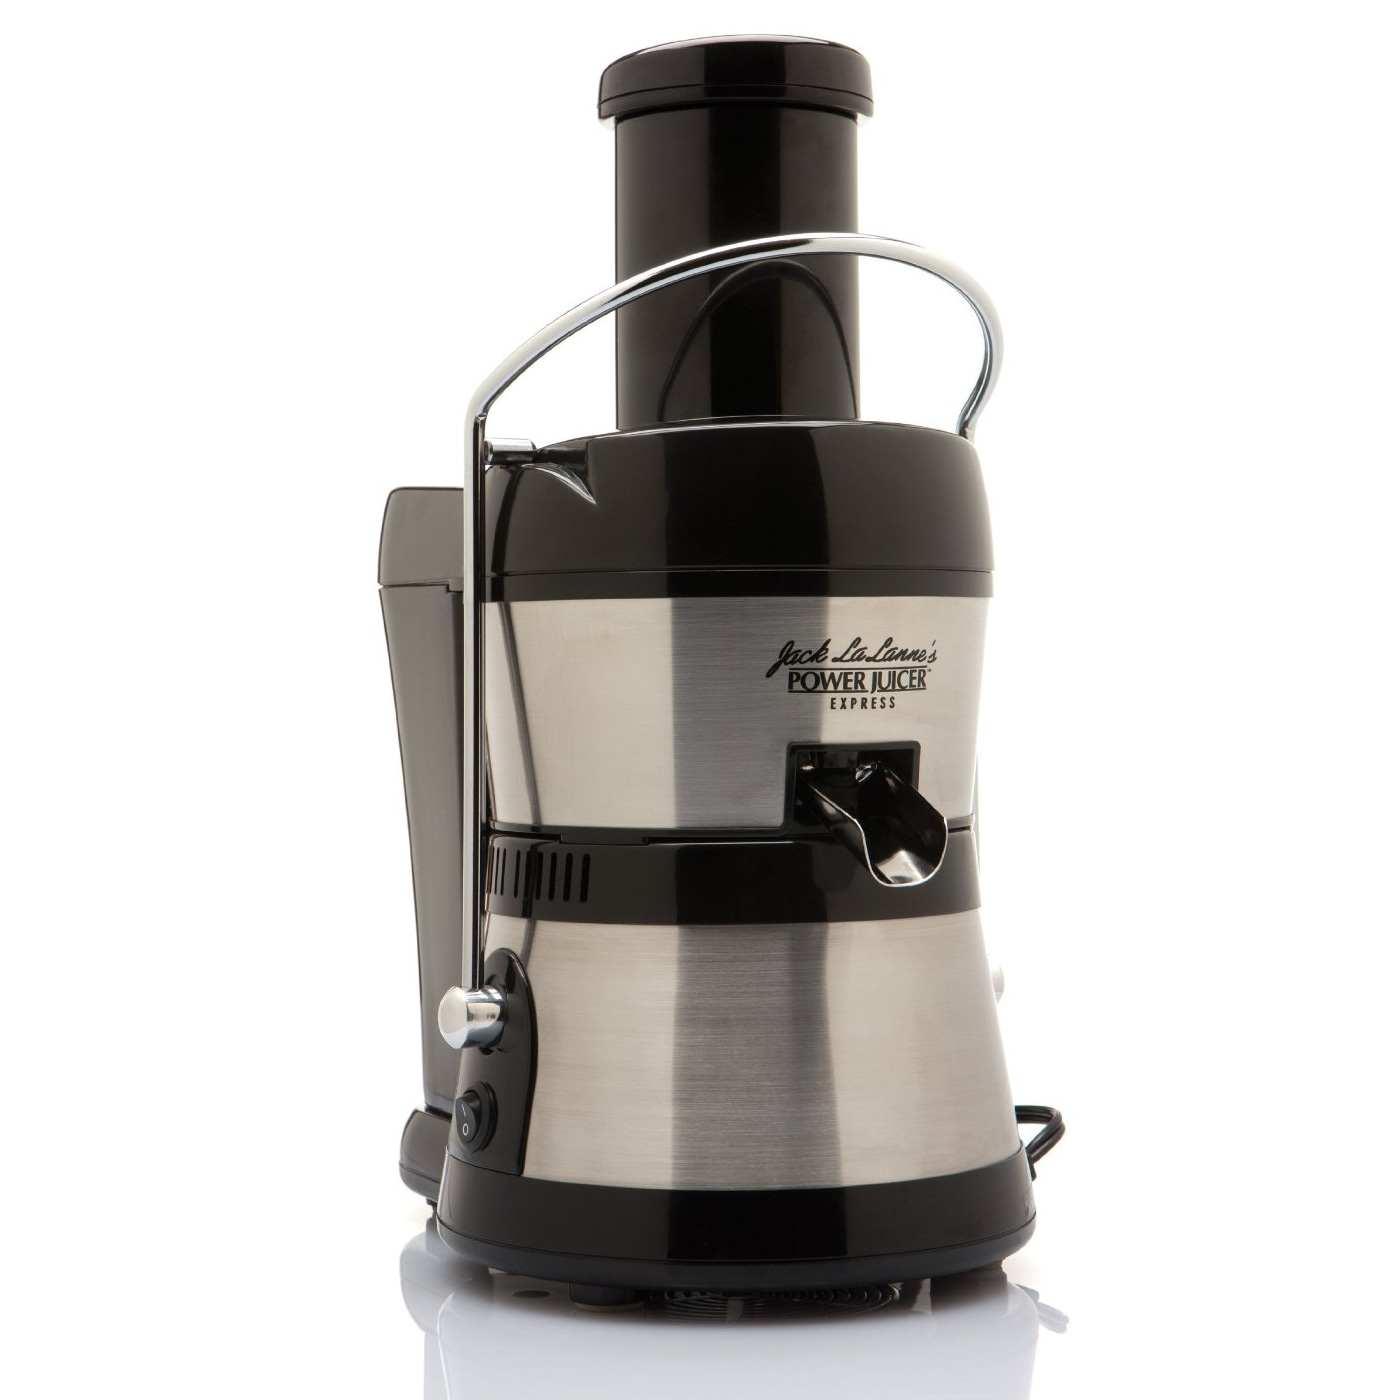 Jack Lalanne Stainless Steel Black Express Deluxe Power Juicer